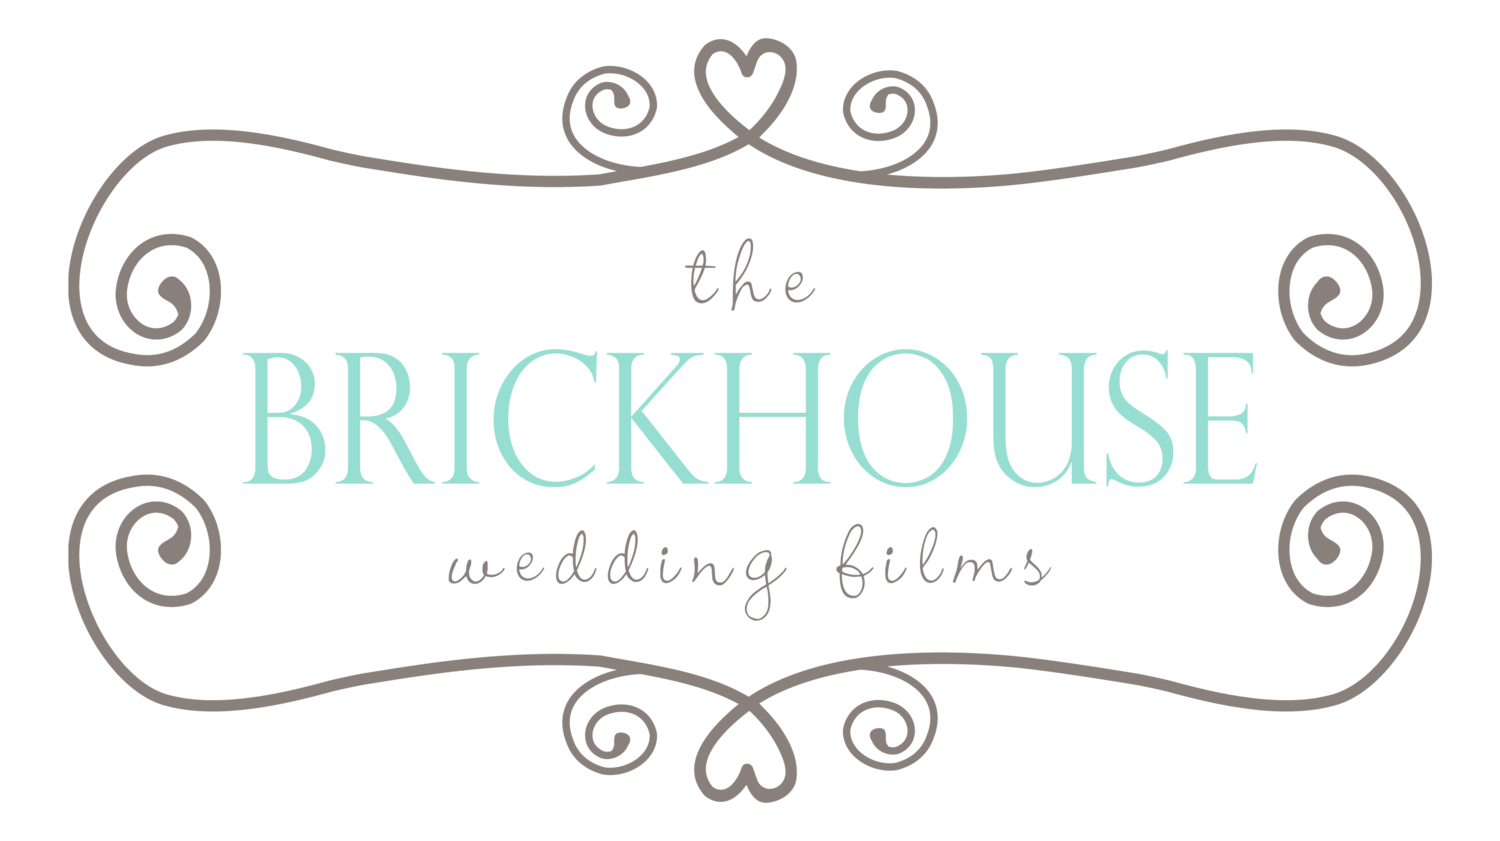 The Brickhouse Wedding Films